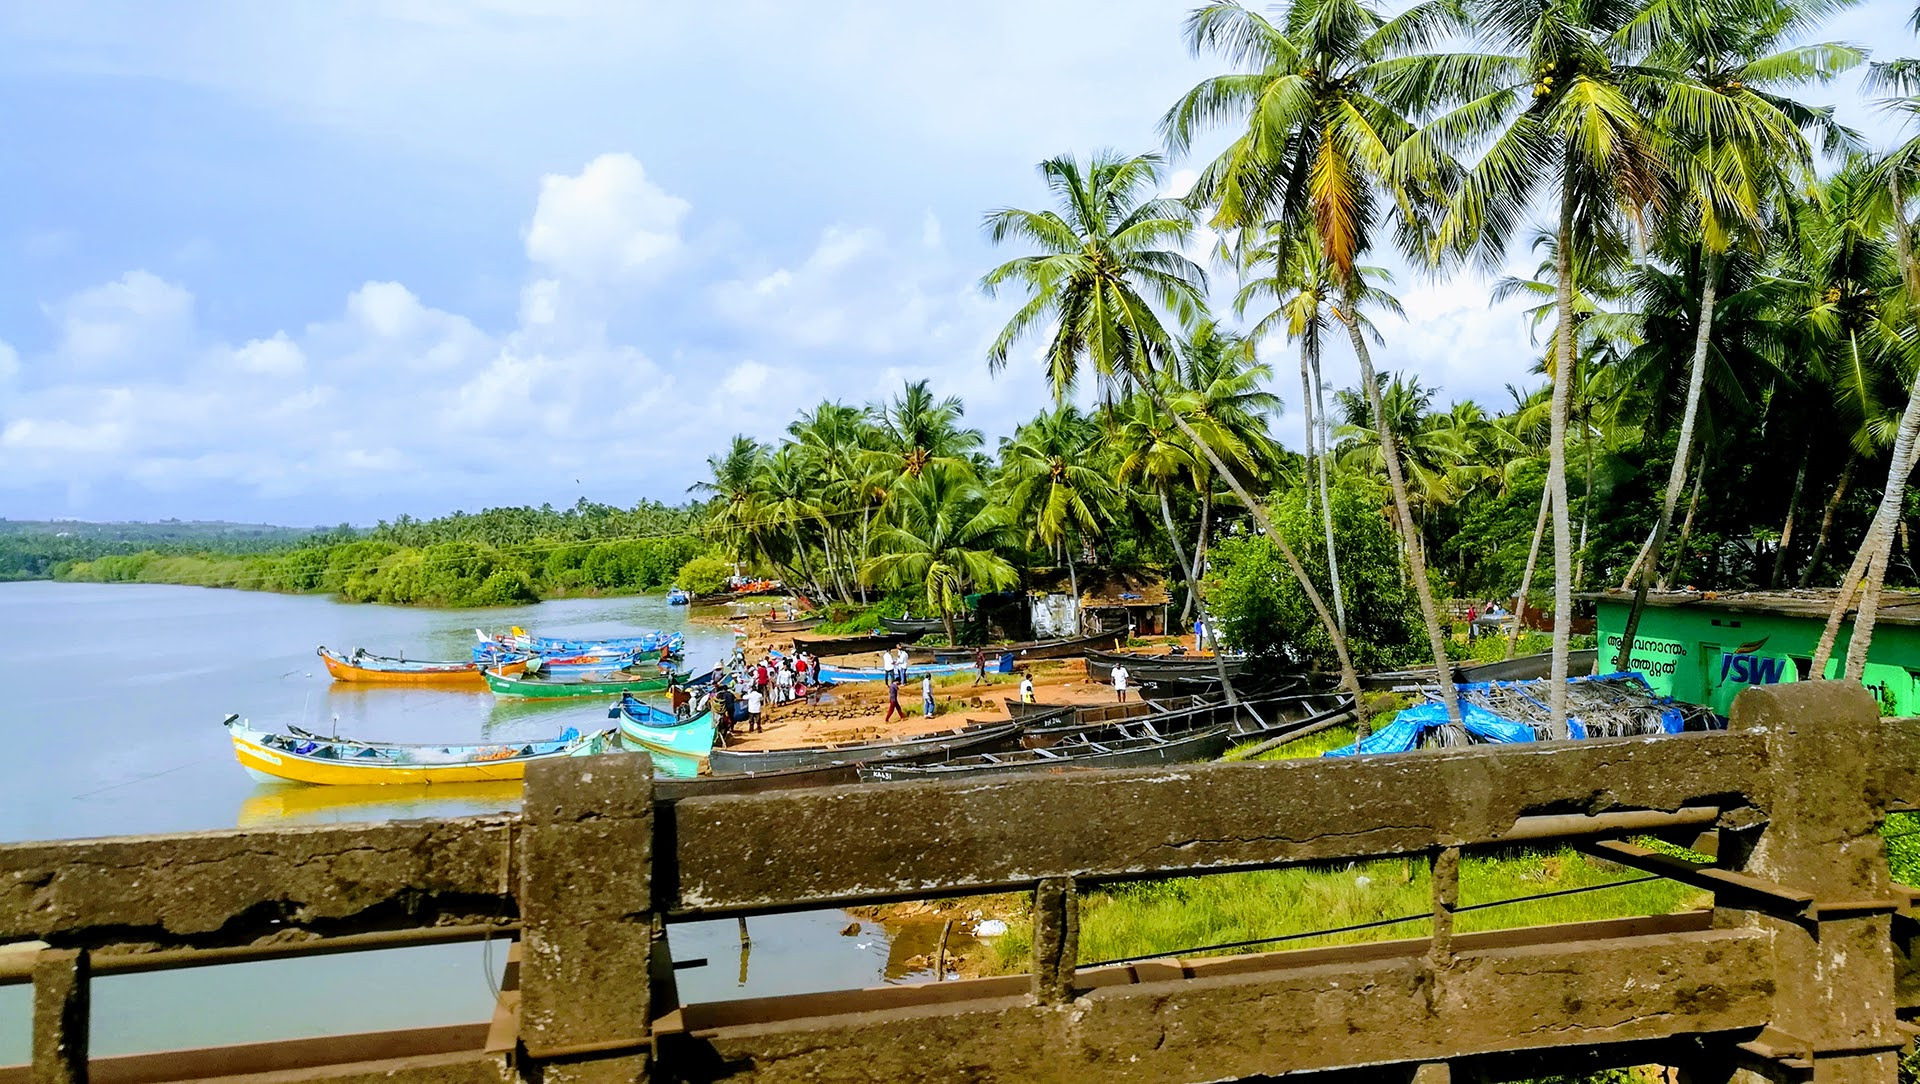 Where I stayed while in Bekal- The LaLit Review